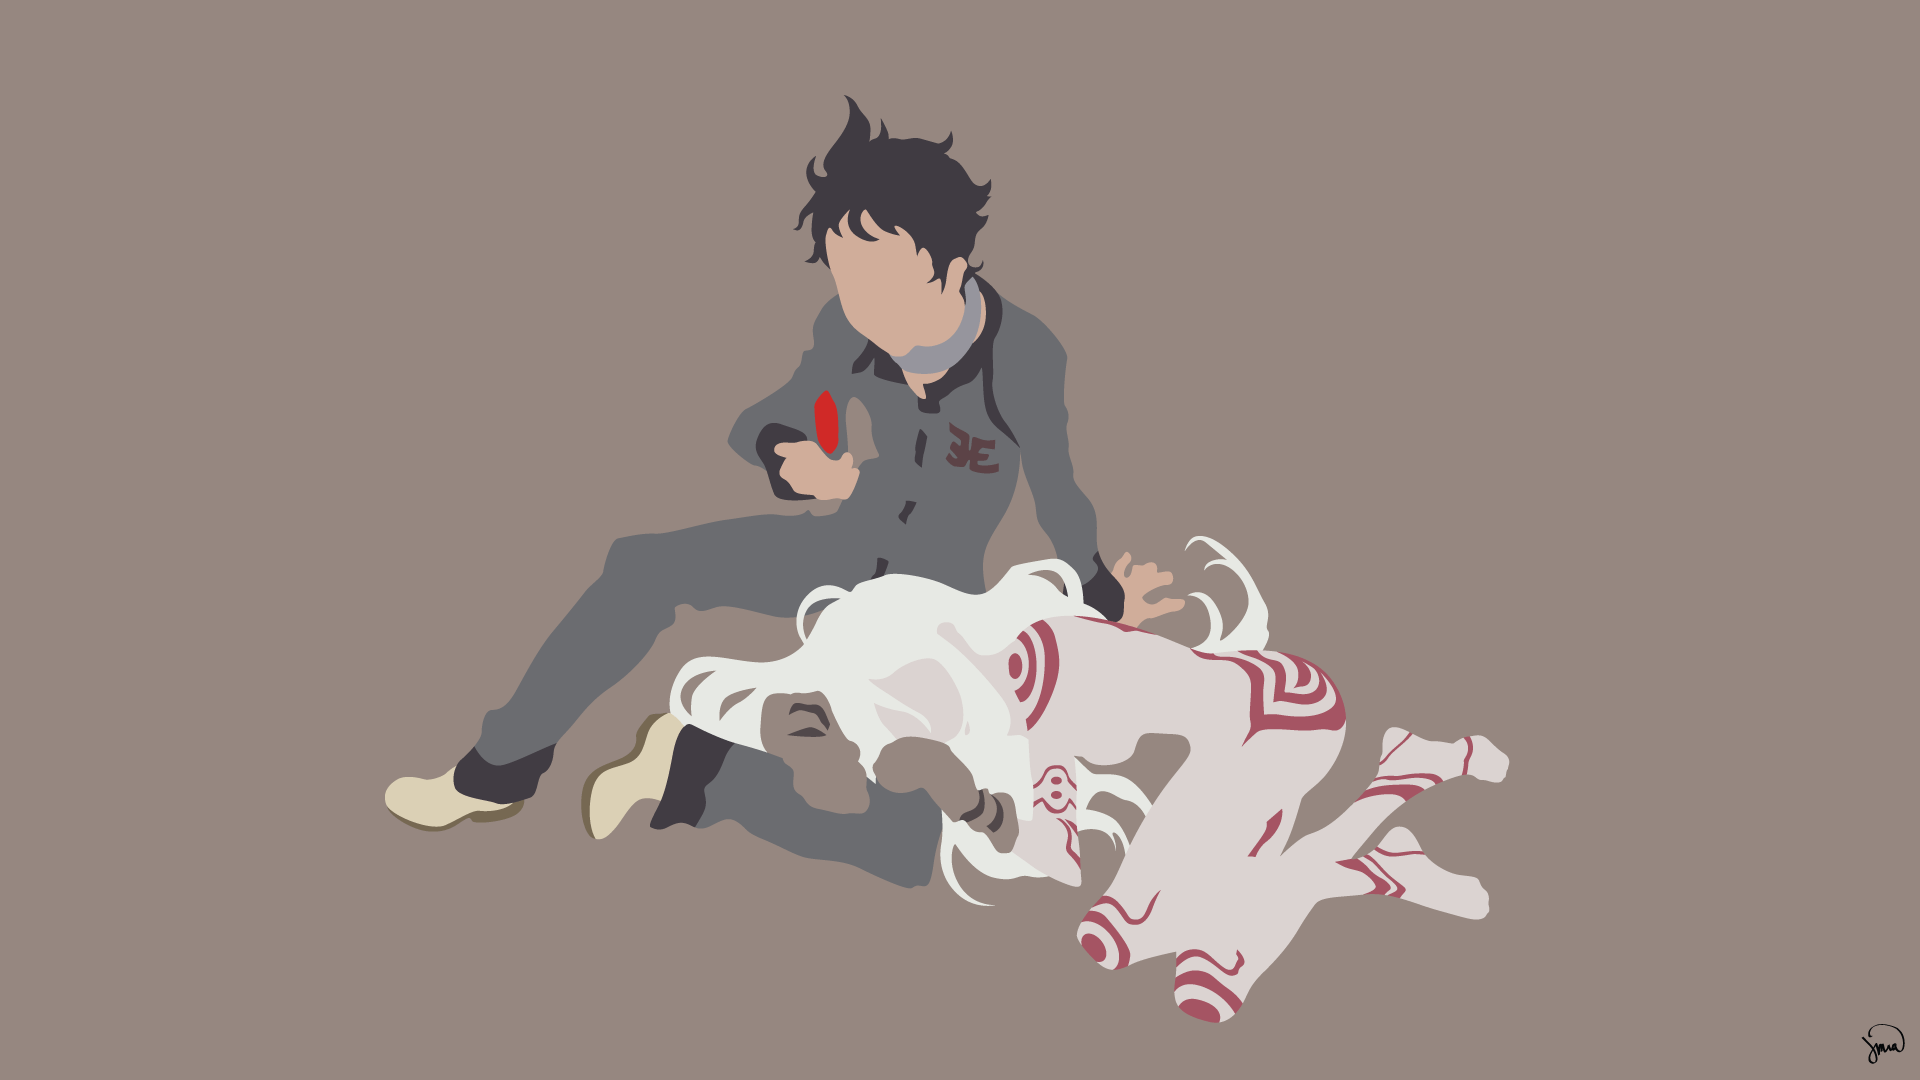 Deadman Wonderland Hd Wallpaper Ganta And Shiro Hd Wallpaper Background Image